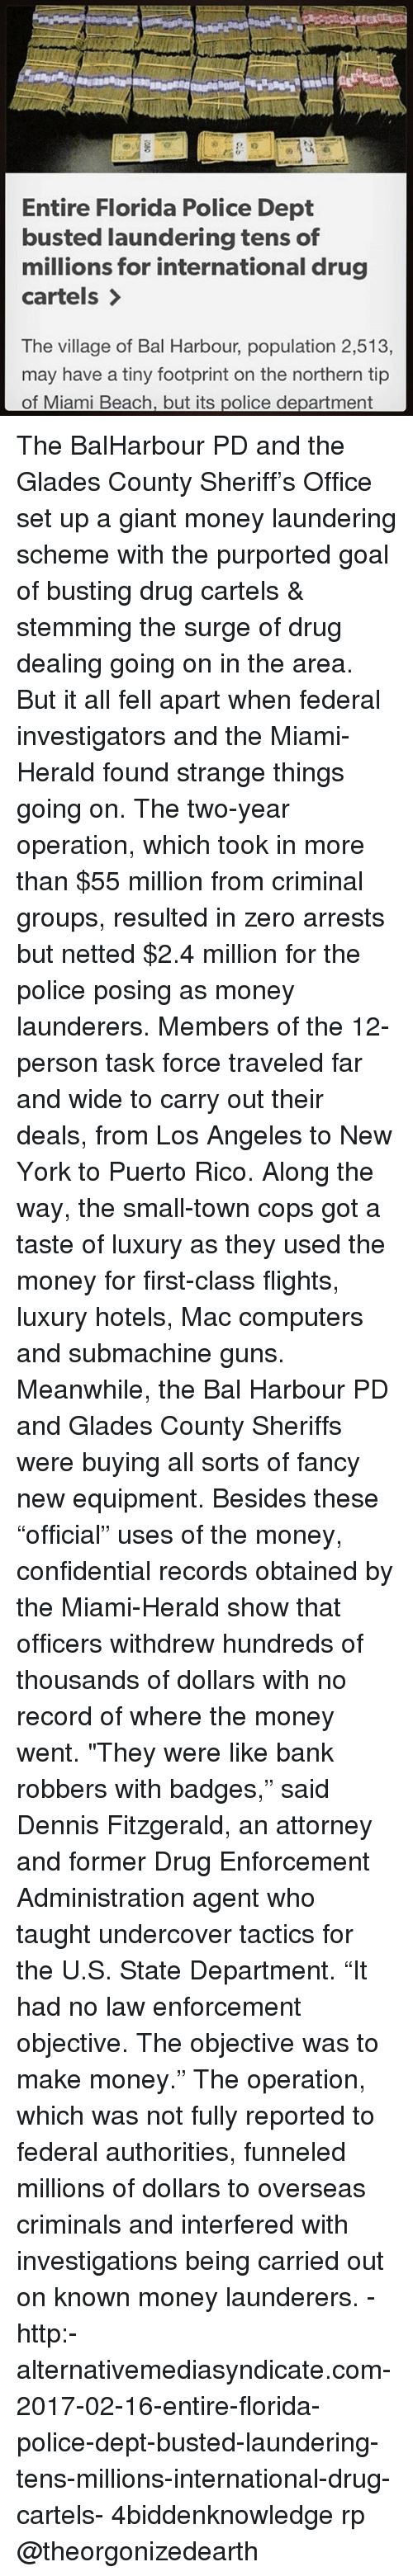 "Computers, Guns, and Memes: Entire Florida Police Dept  busted laundering tens of  millions for international drug  cartels  The village of Bal Harbour, population 2,513,  may have a tiny footprint on the northern tip  of Miami Beach, but its police department The BalHarbour PD and the Glades County Sheriff's Office set up a giant money laundering scheme with the purported goal of busting drug cartels & stemming the surge of drug dealing going on in the area. But it all fell apart when federal investigators and the Miami-Herald found strange things going on. The two-year operation, which took in more than $55 million from criminal groups, resulted in zero arrests but netted $2.4 million for the police posing as money launderers. Members of the 12-person task force traveled far and wide to carry out their deals, from Los Angeles to New York to Puerto Rico. Along the way, the small-town cops got a taste of luxury as they used the money for first-class flights, luxury hotels, Mac computers and submachine guns. Meanwhile, the Bal Harbour PD and Glades County Sheriffs were buying all sorts of fancy new equipment. Besides these ""official"" uses of the money, confidential records obtained by the Miami-Herald show that officers withdrew hundreds of thousands of dollars with no record of where the money went. ""They were like bank robbers with badges,"" said Dennis Fitzgerald, an attorney and former Drug Enforcement Administration agent who taught undercover tactics for the U.S. State Department. ""It had no law enforcement objective. The objective was to make money."" The operation, which was not fully reported to federal authorities, funneled millions of dollars to overseas criminals and interfered with investigations being carried out on known money launderers. - http:-alternativemediasyndicate.com-2017-02-16-entire-florida-police-dept-busted-laundering-tens-millions-international-drug-cartels- 4biddenknowledge rp @theorgonizedearth"